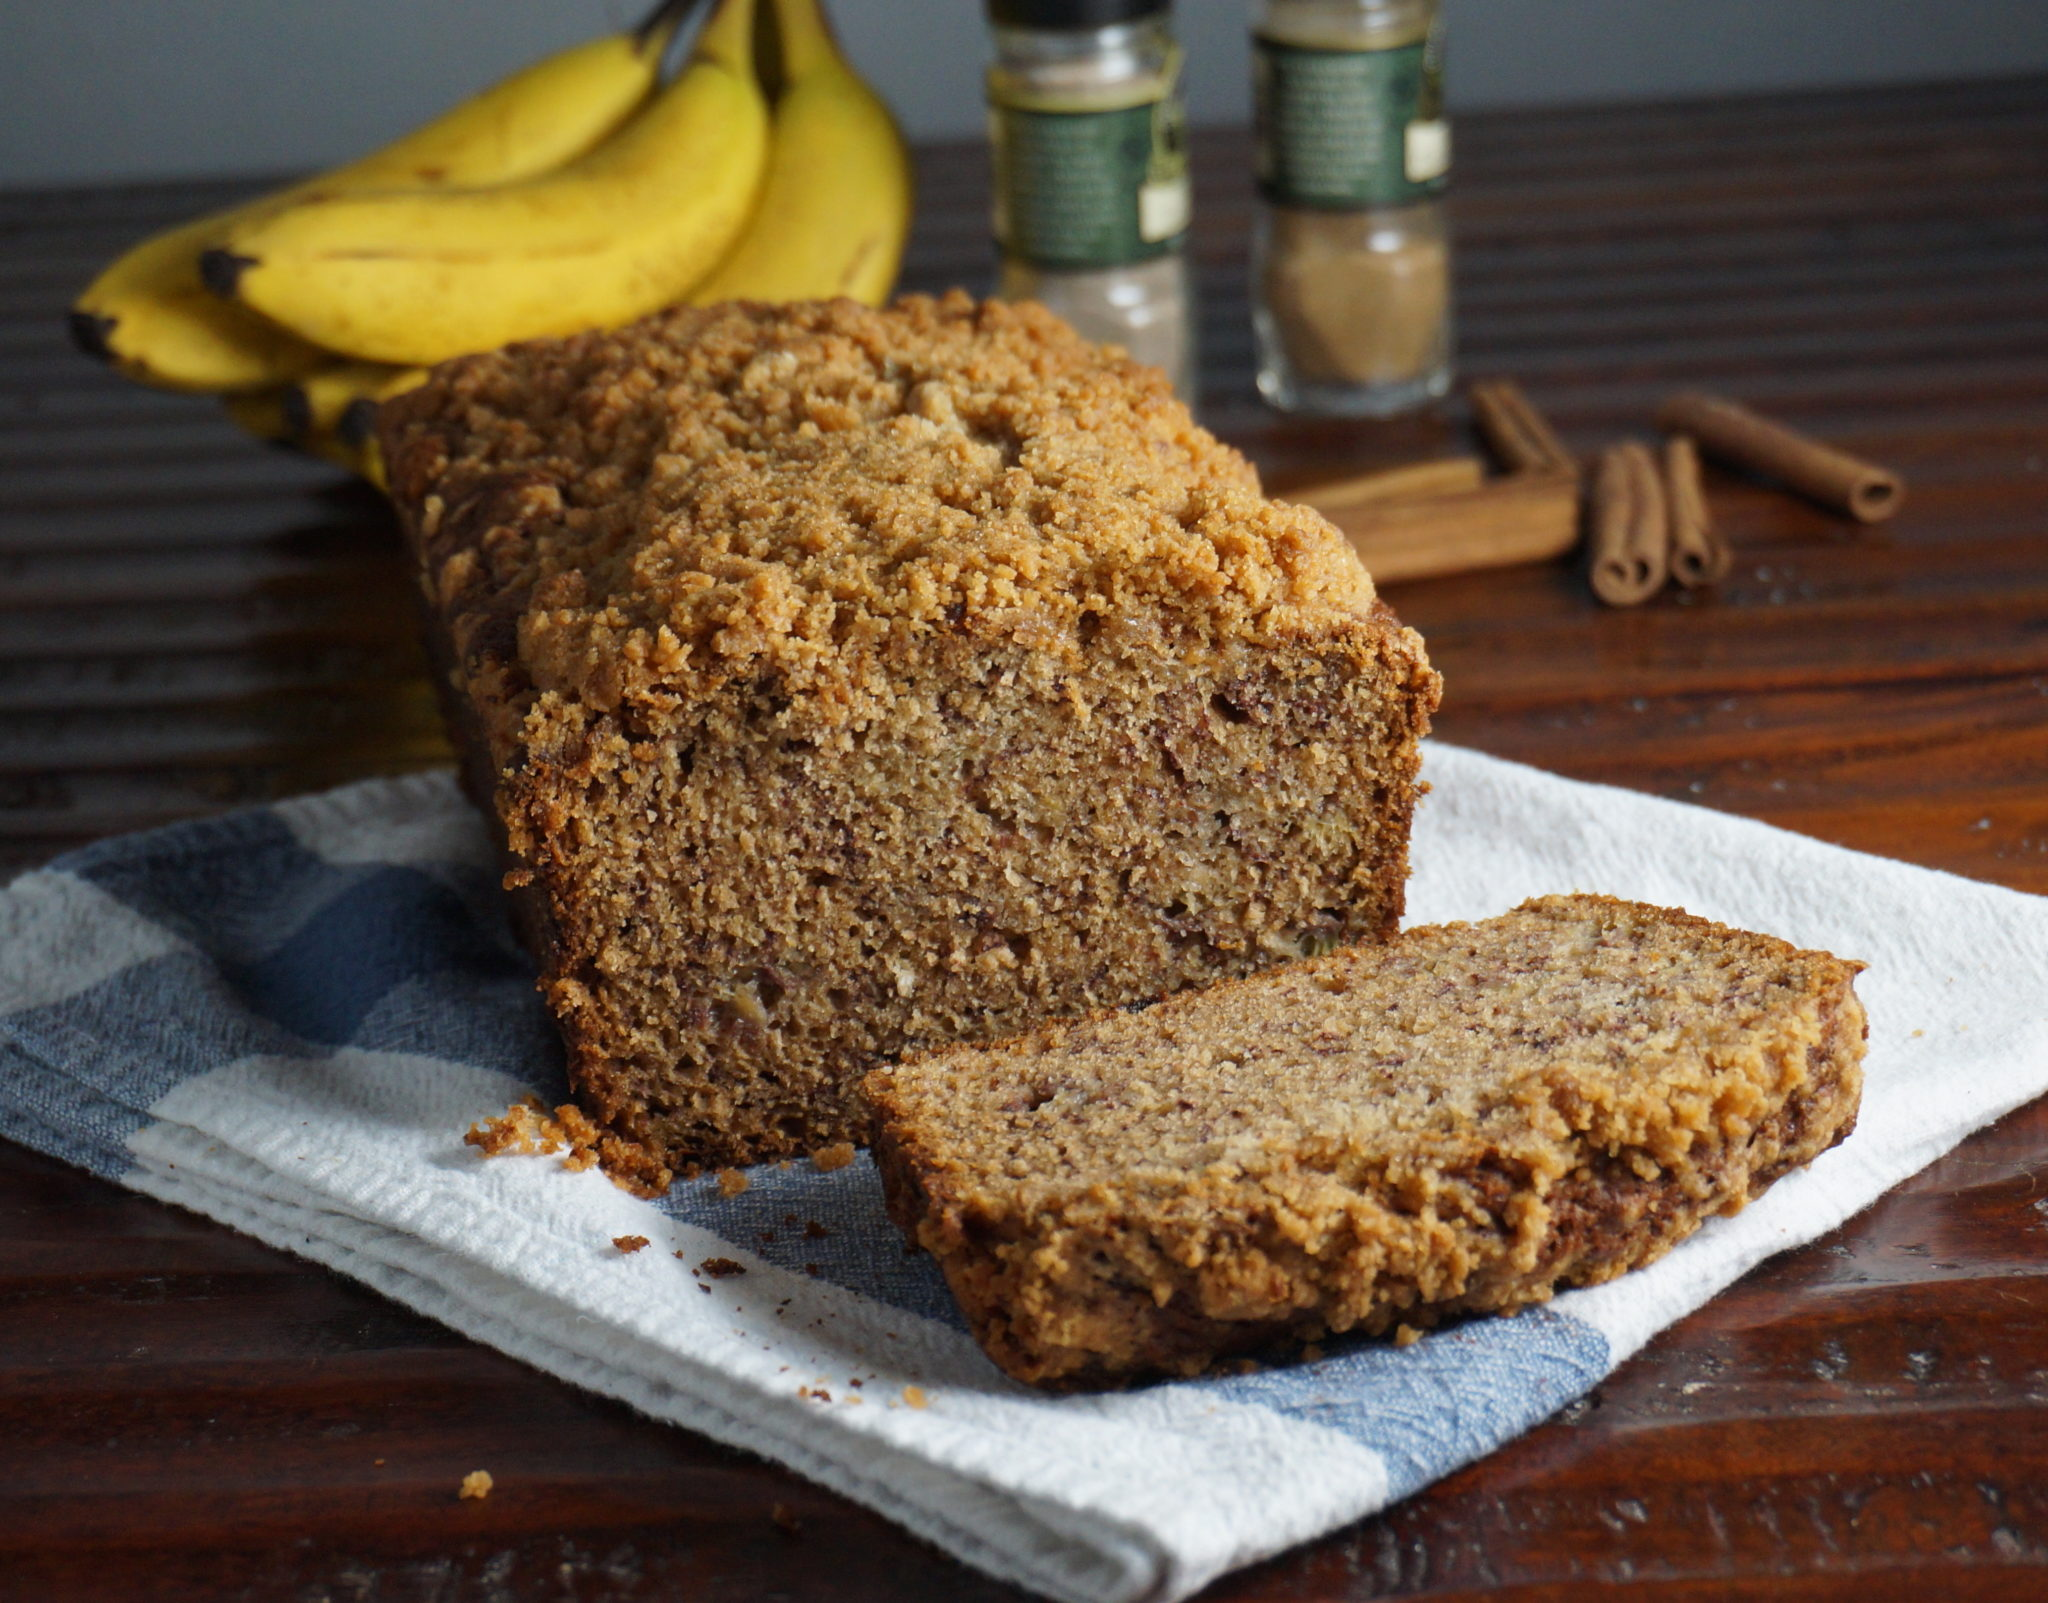 Recipe for a loaf of banana bread